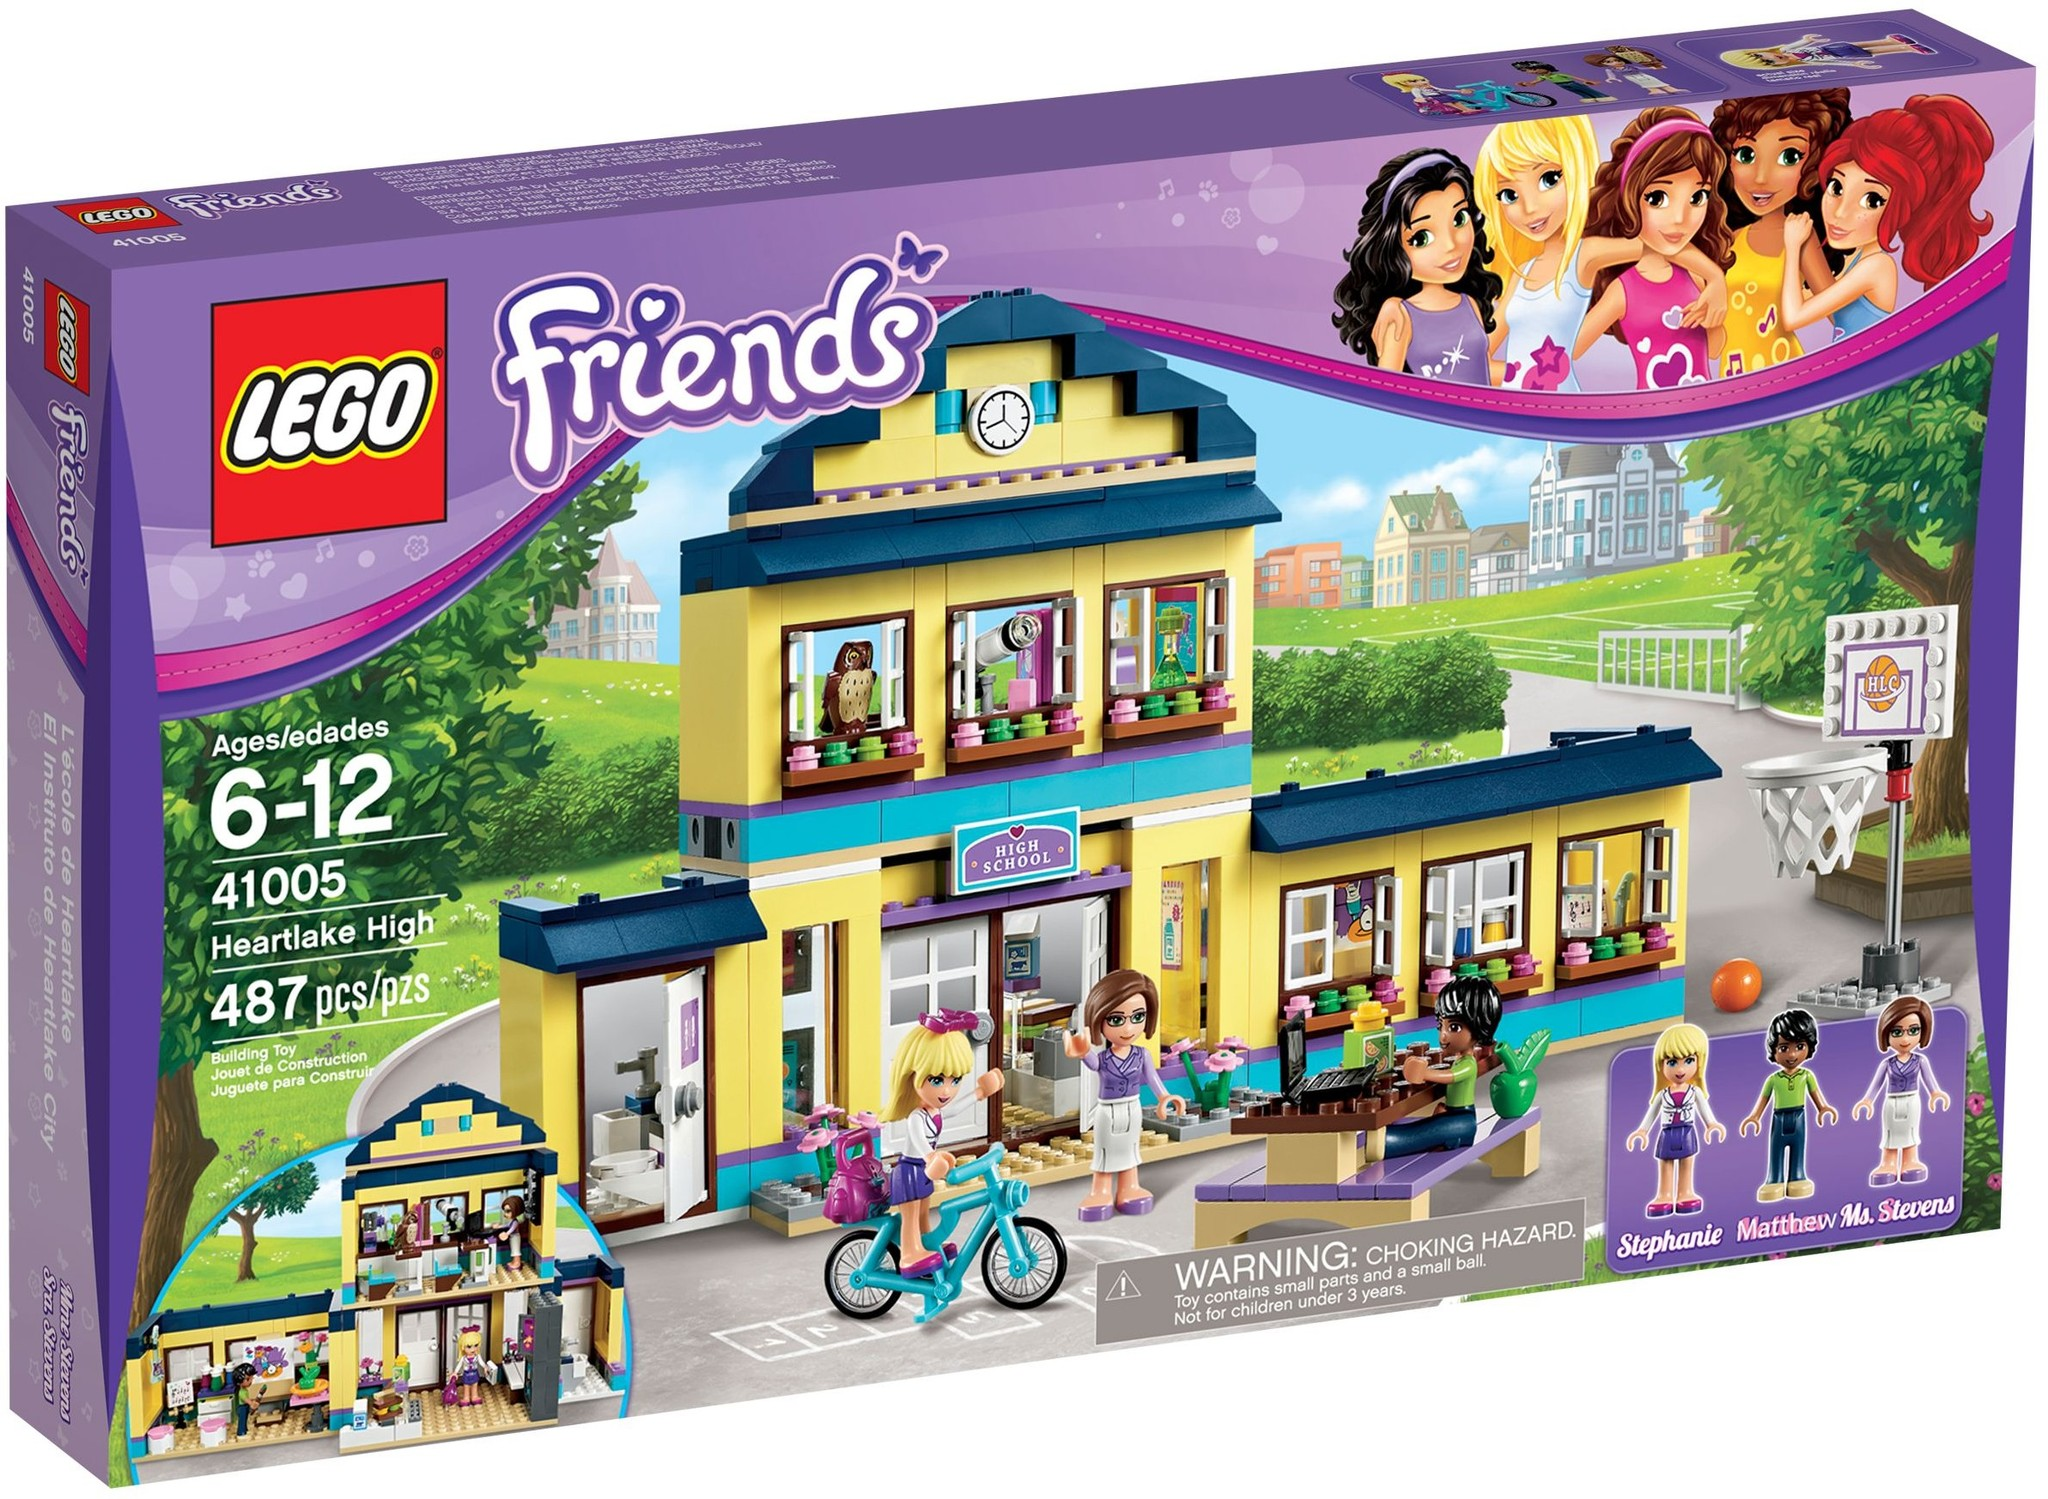 LEGO 41005 - Friends - Heartlake High